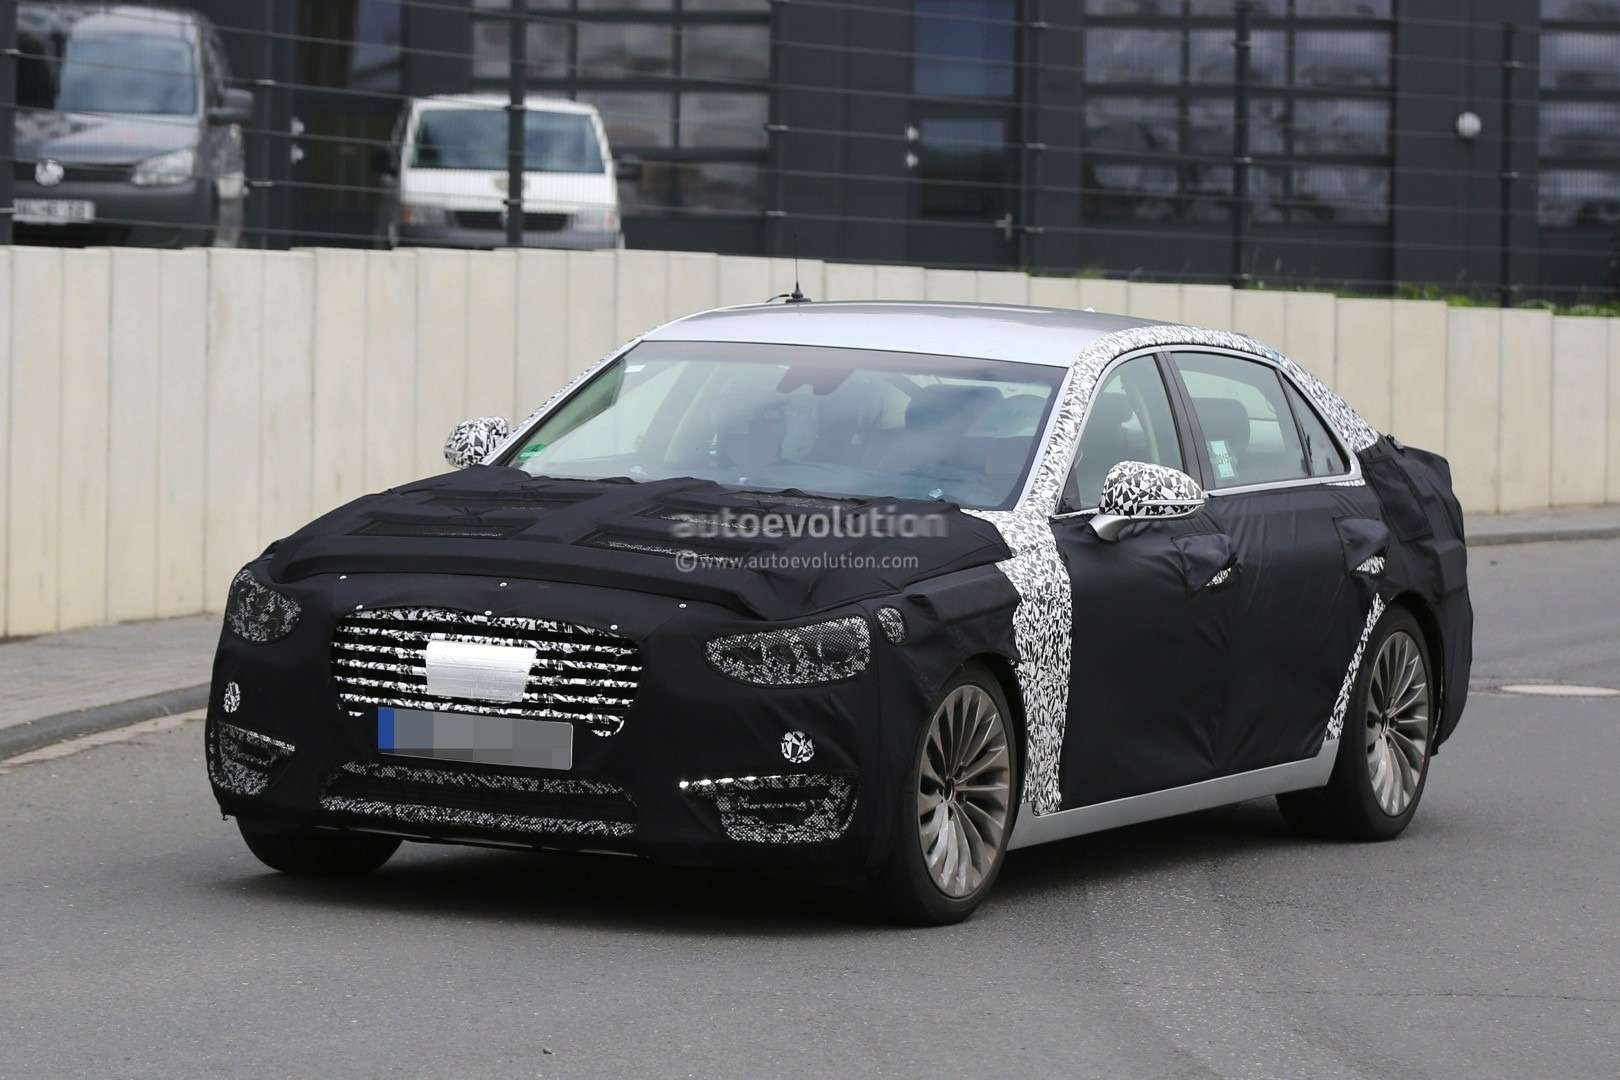 2017-hyundai-equus-spied-out-testing-in-germany-photo-gallery_2